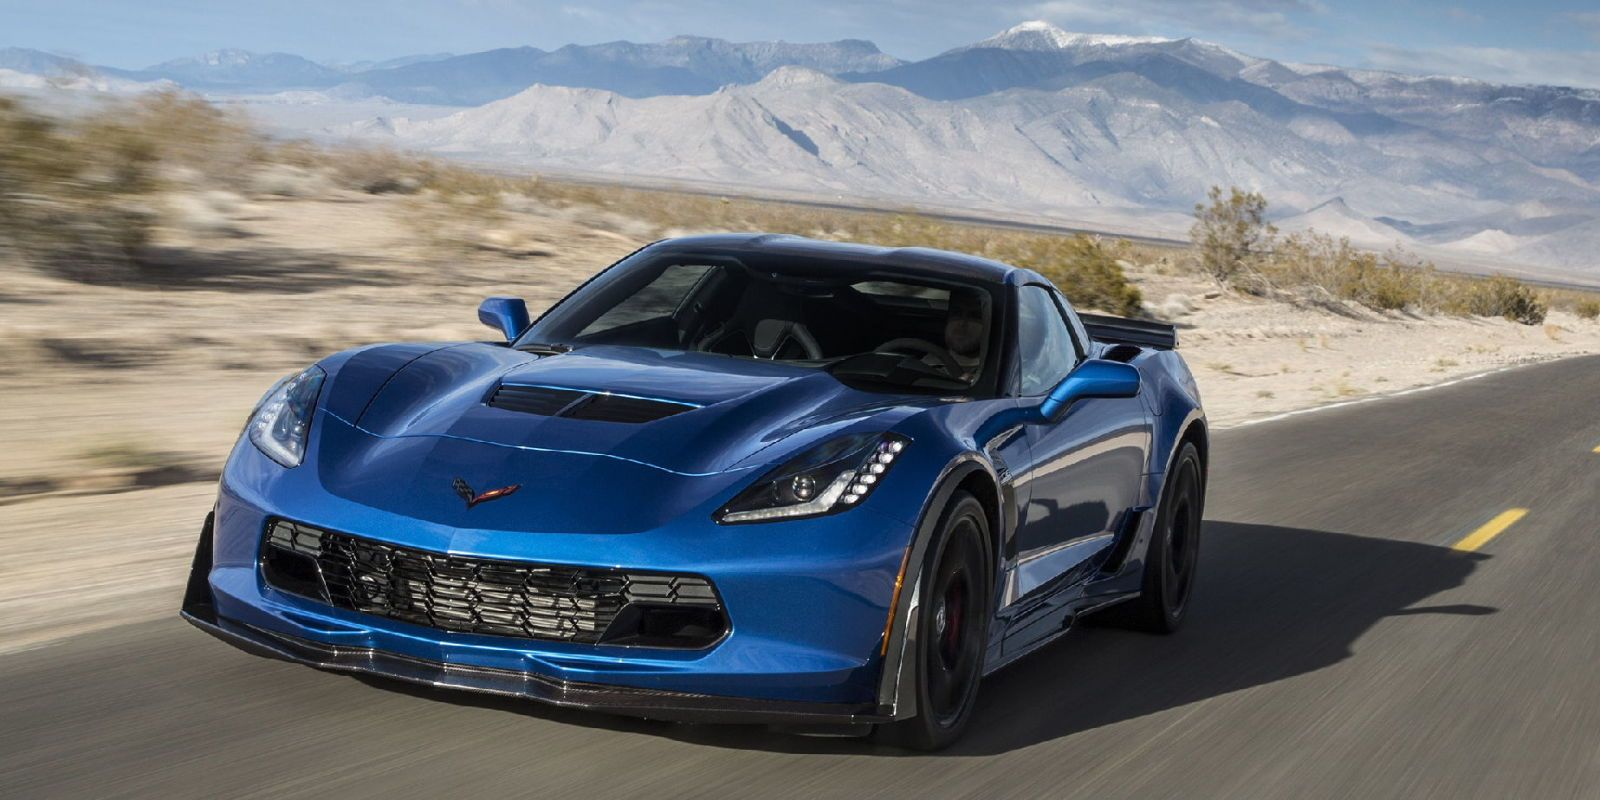 Fastest Car In The World Wallpaper 2015 The Fastest Cars You Can Buy In 2015